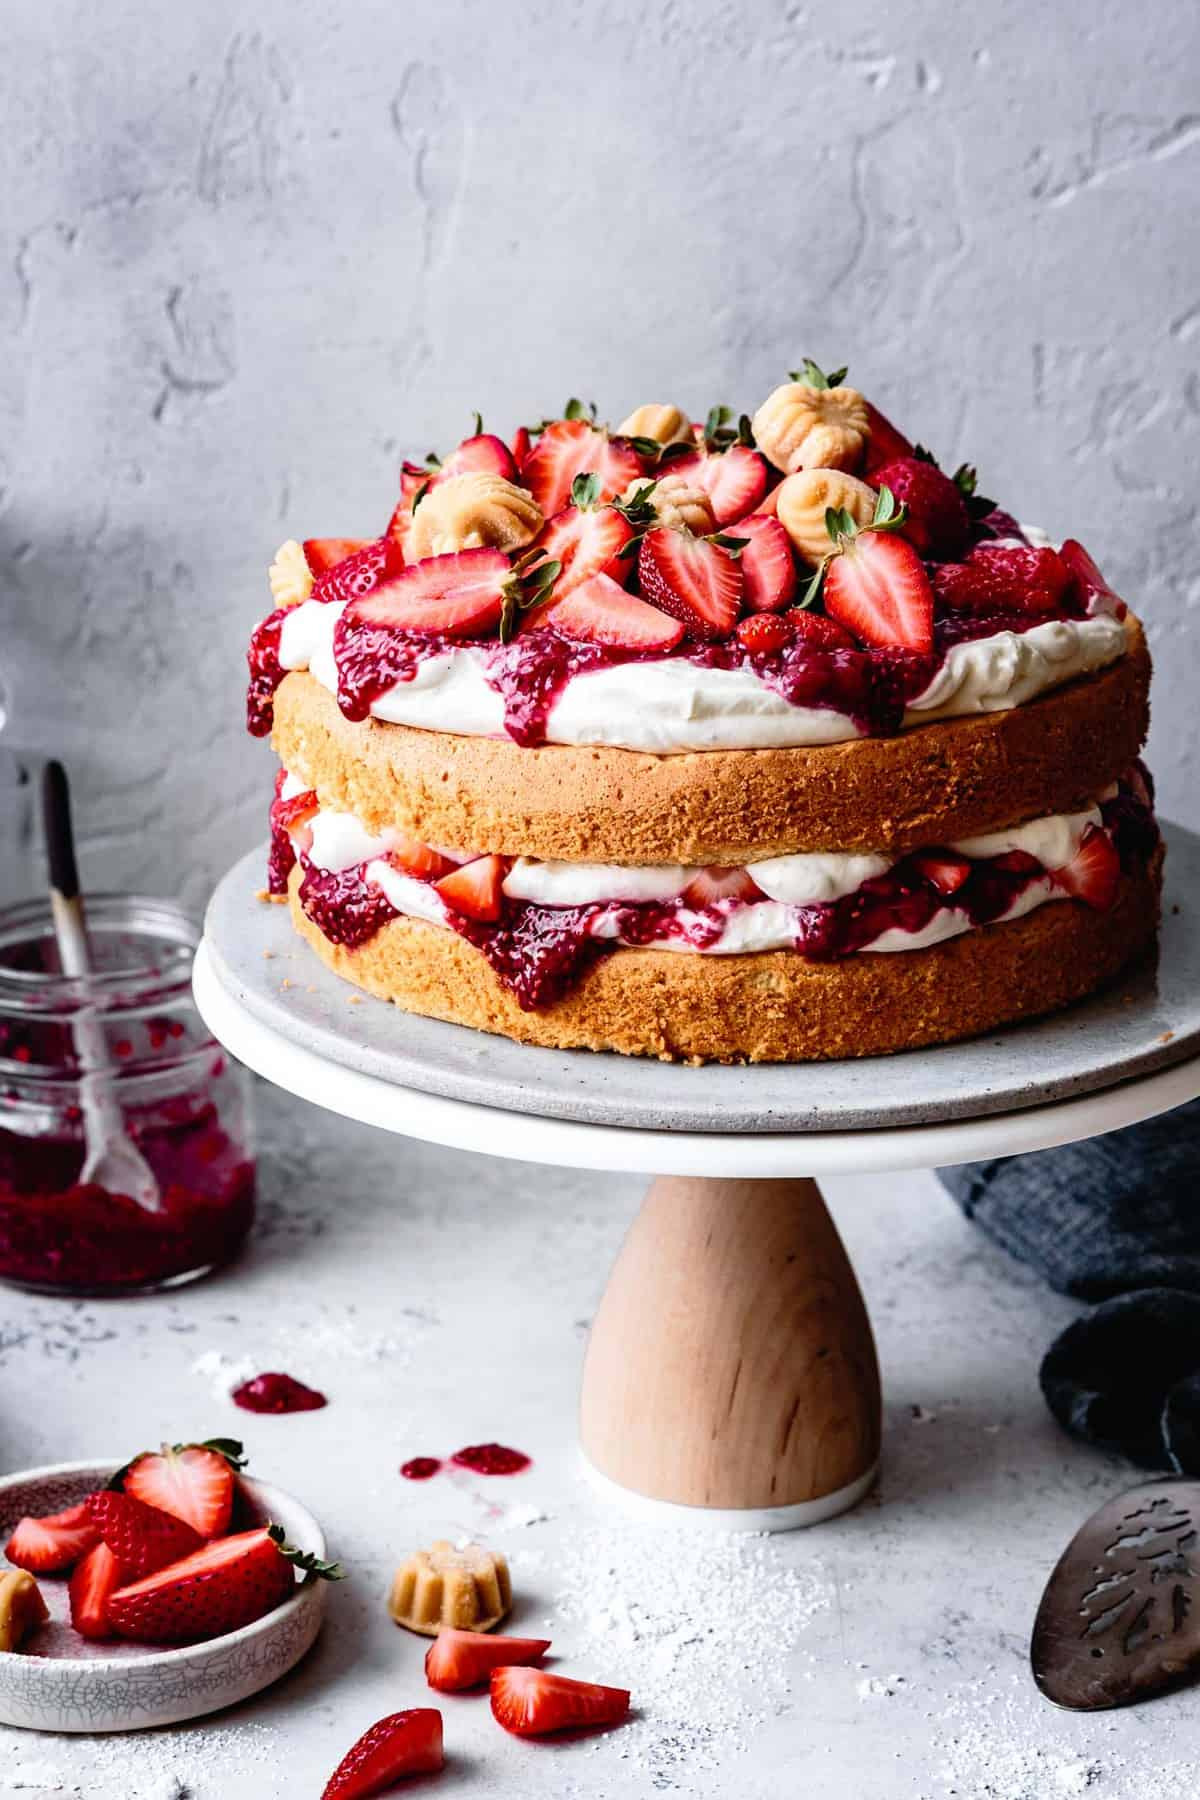 gluten-free sponge cake layered with strawberries, cream, and jam on a cake stand